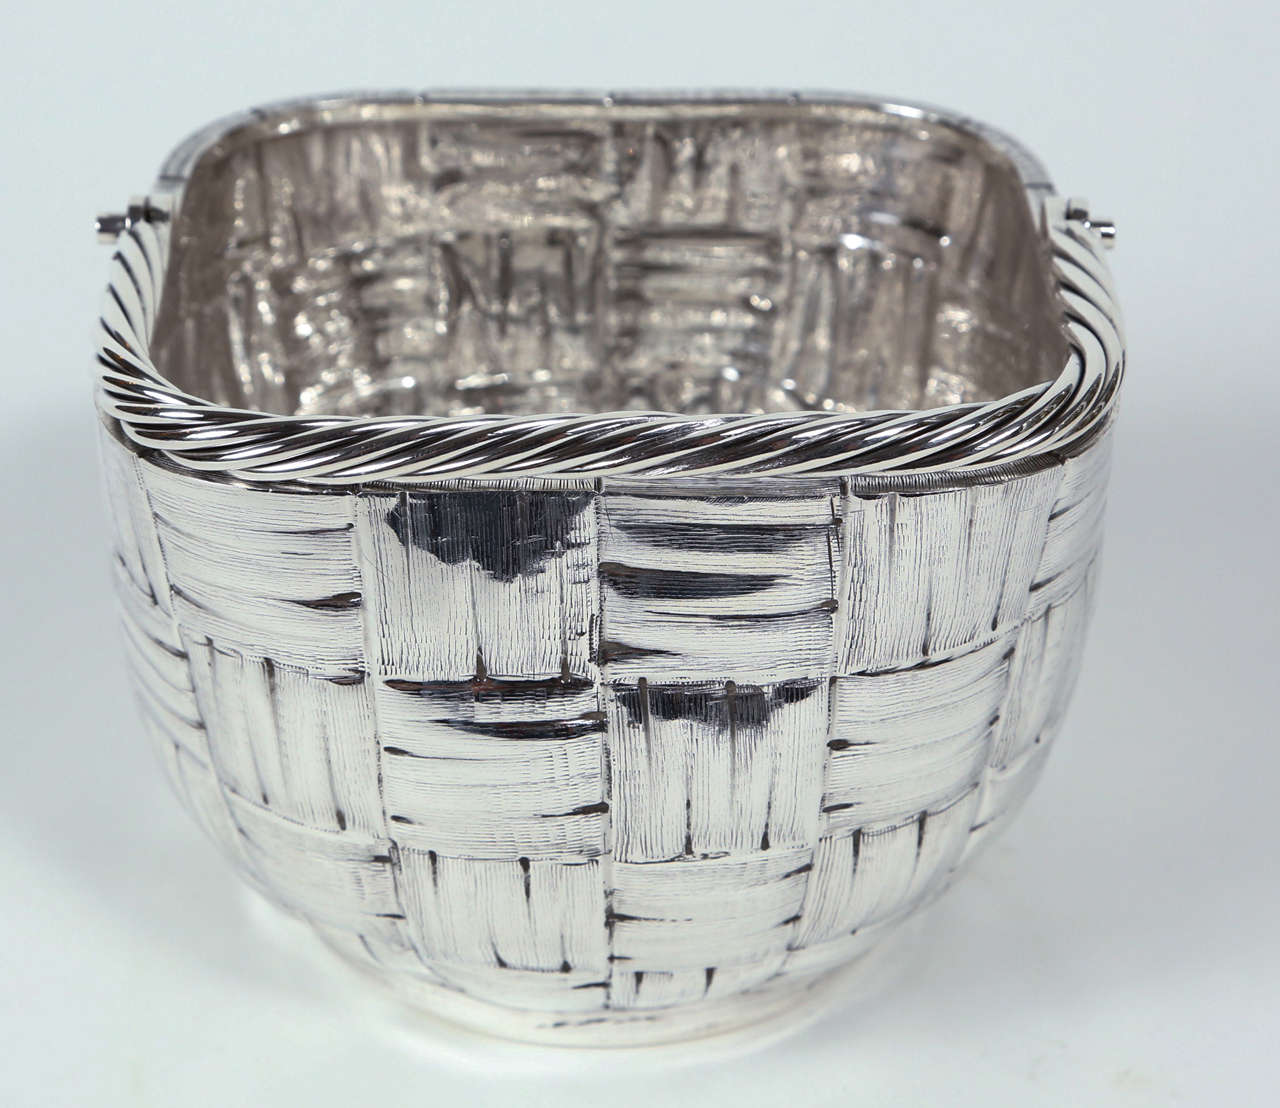 Italian Sterling Silver Basket By Fratelli Cacchione At